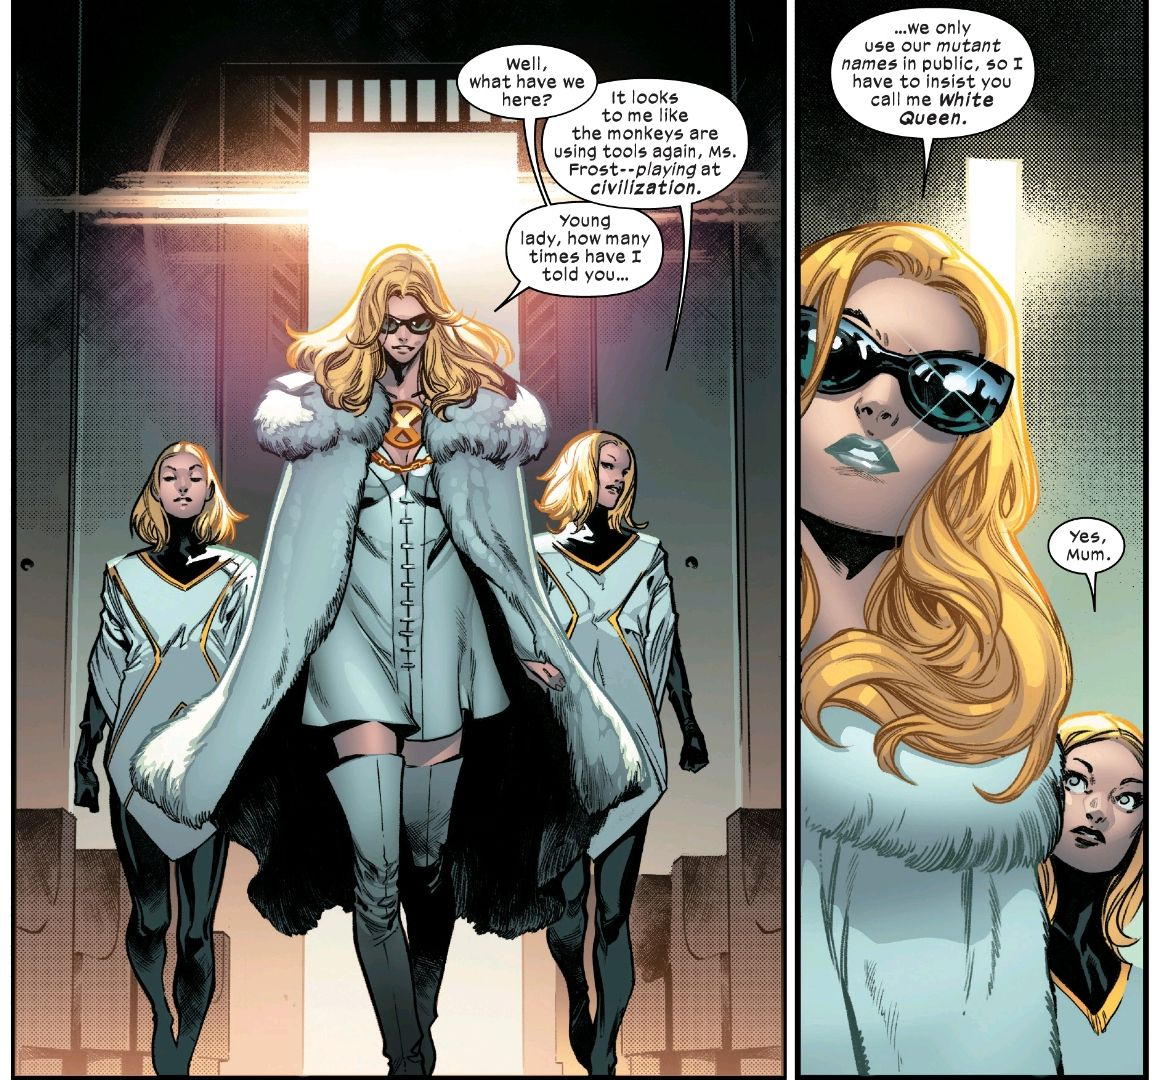 """Emma Frost makes a glamorous entrance at Sabretooth's trial, flanked by two of the Stepford Cukoos. She reminds them to call her """"White Queen"""" and one answers, """"Yes, mum."""" From House of X #3, Marvel Comics (2019)."""